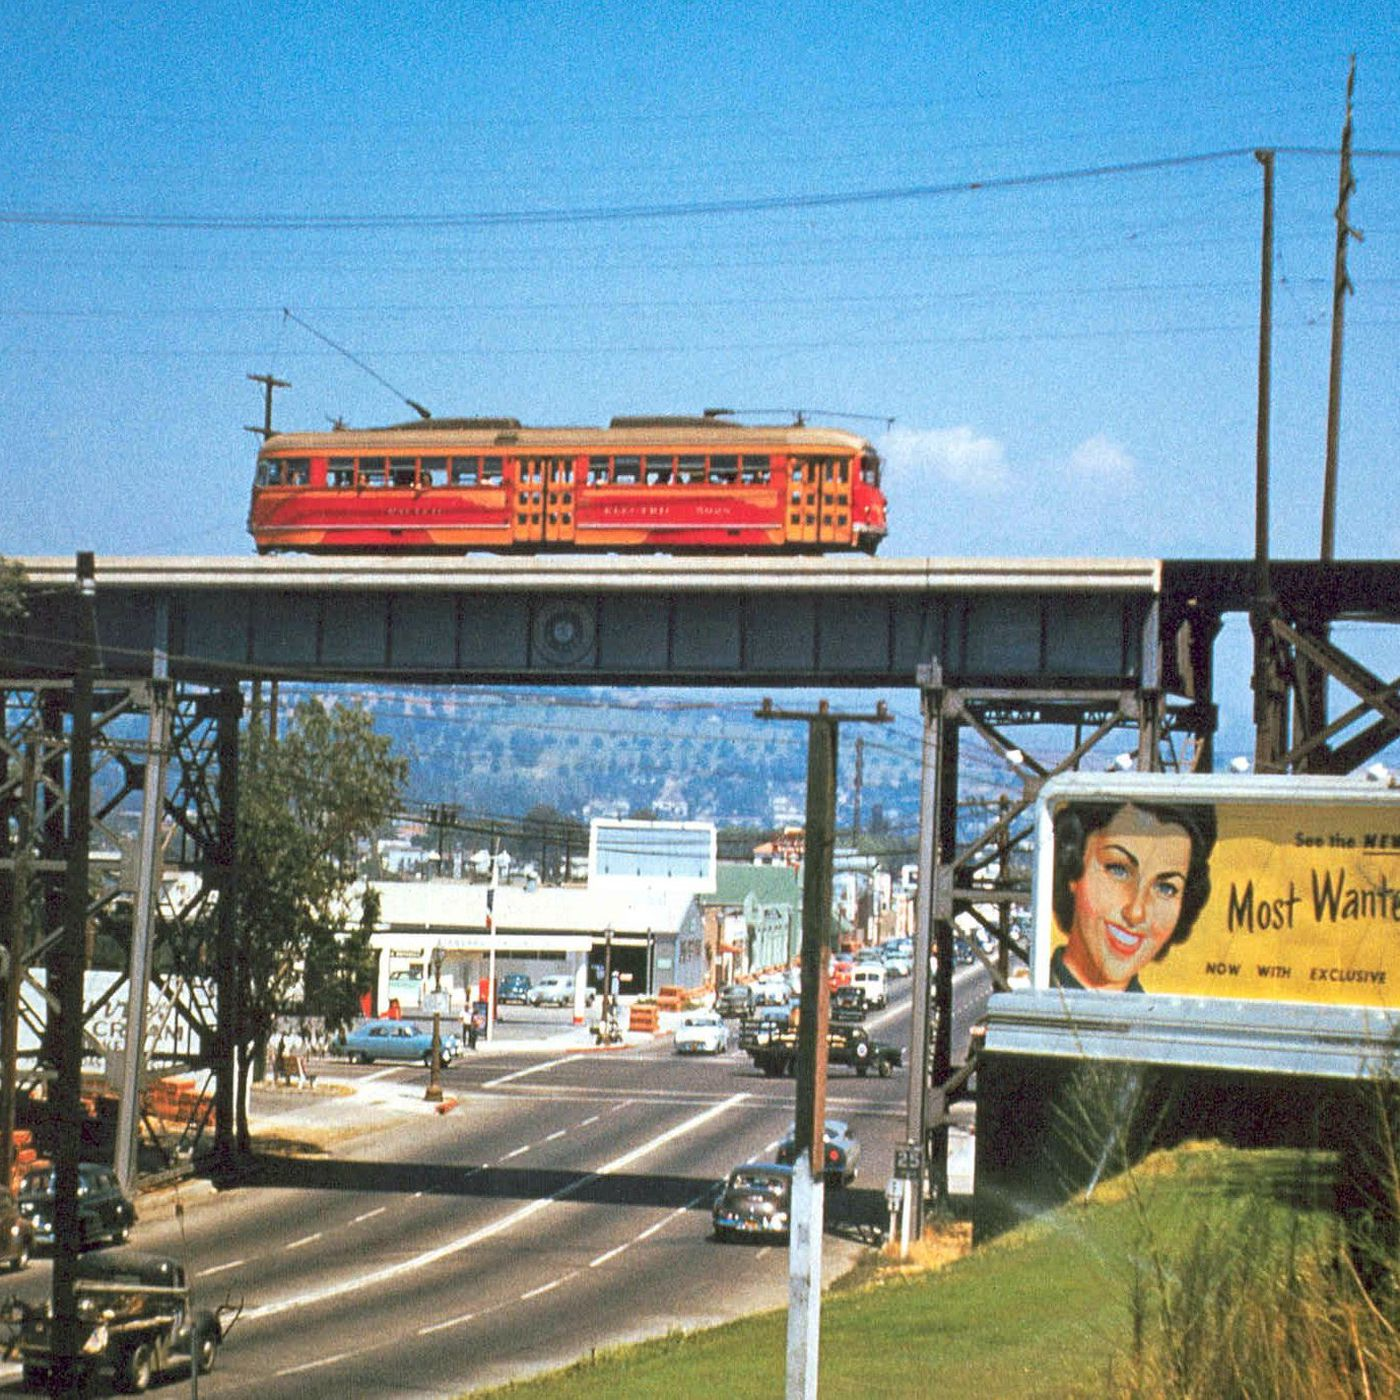 The Los Angeles streetcar conspiracy and the end of LA's old rail